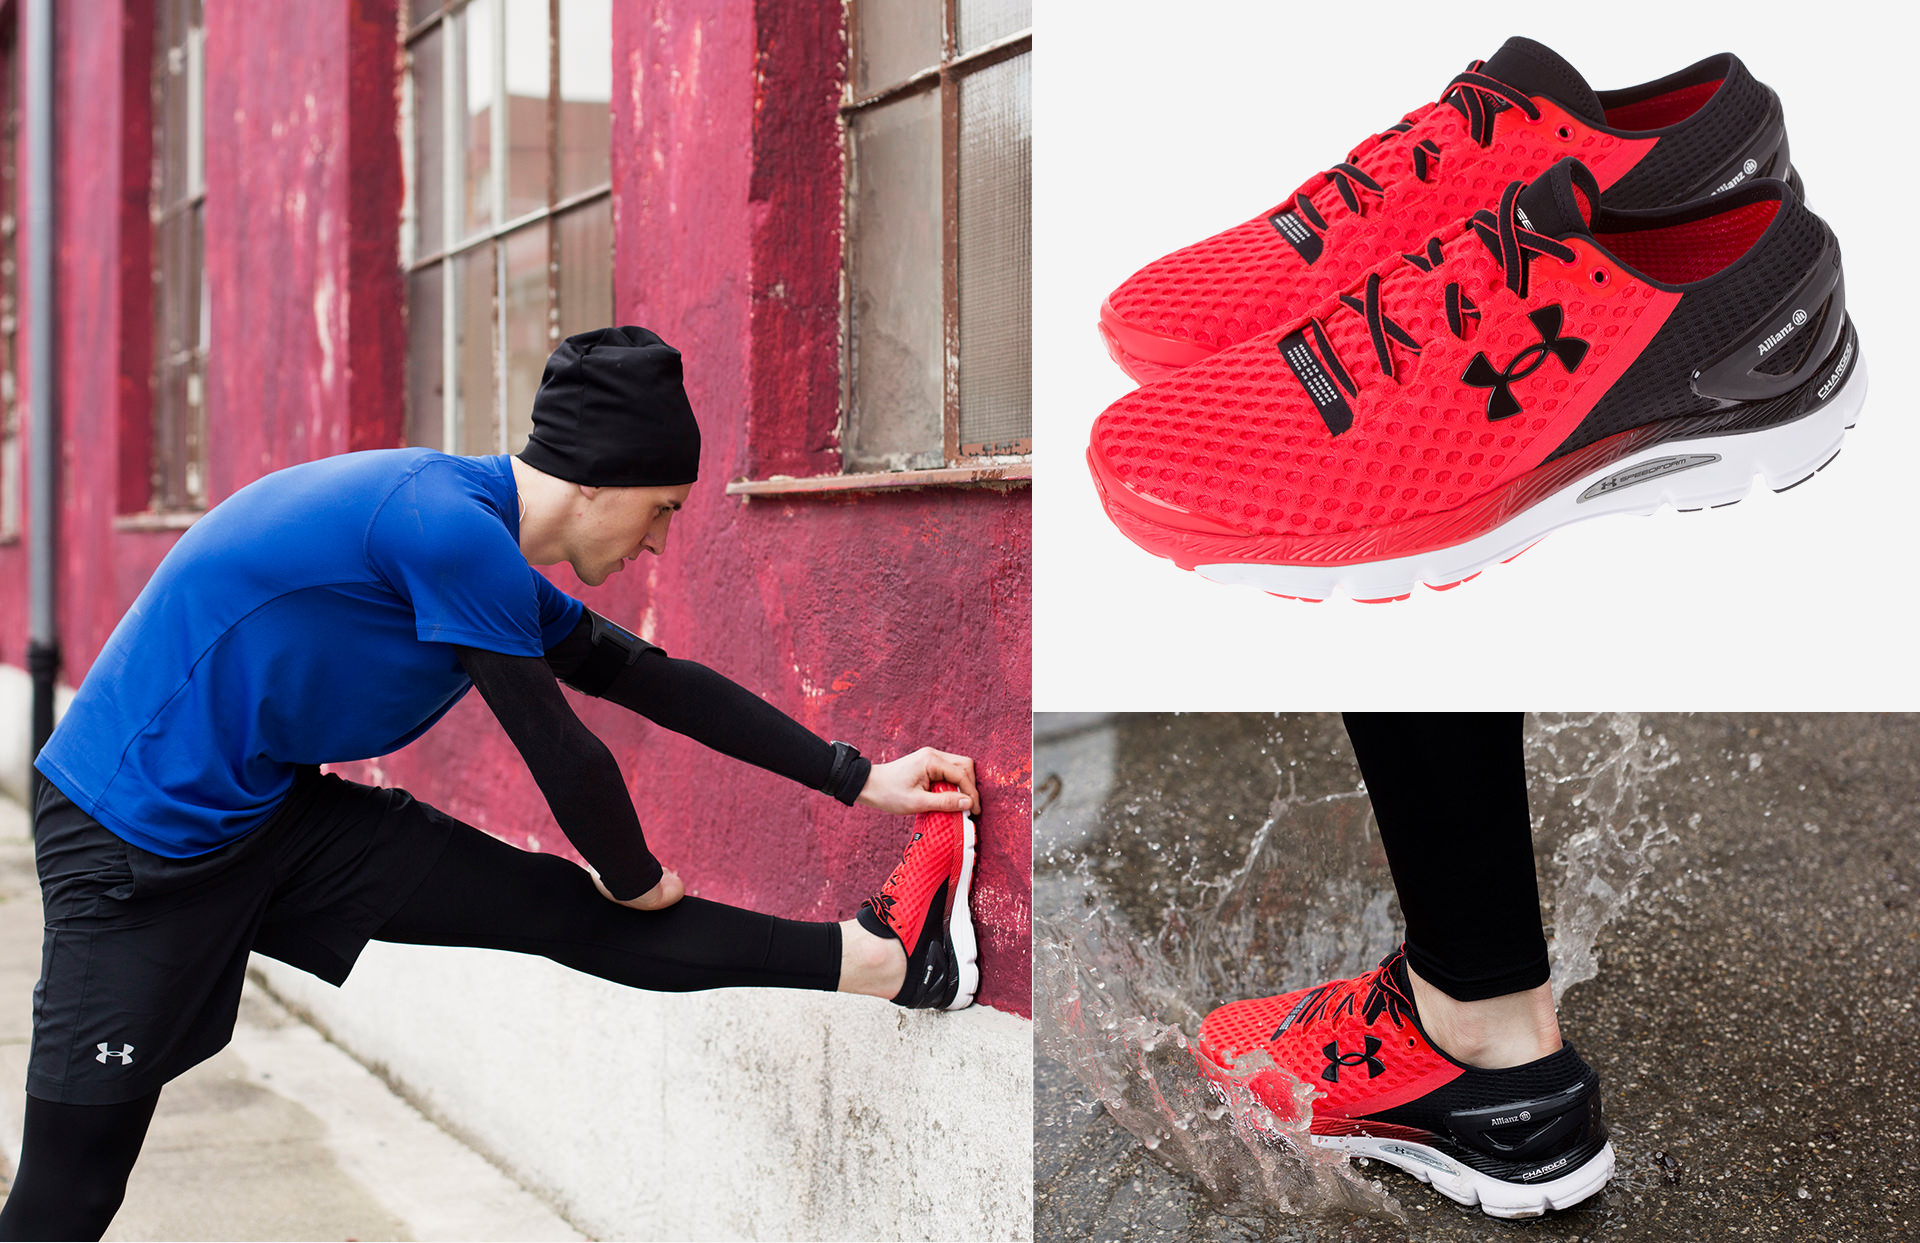 Allianz SE catalog katalog Marketing Strategy design fashion collection shooting running sport under armor shoes layout print LAKE5 Consulting GmbH Hannover Germany